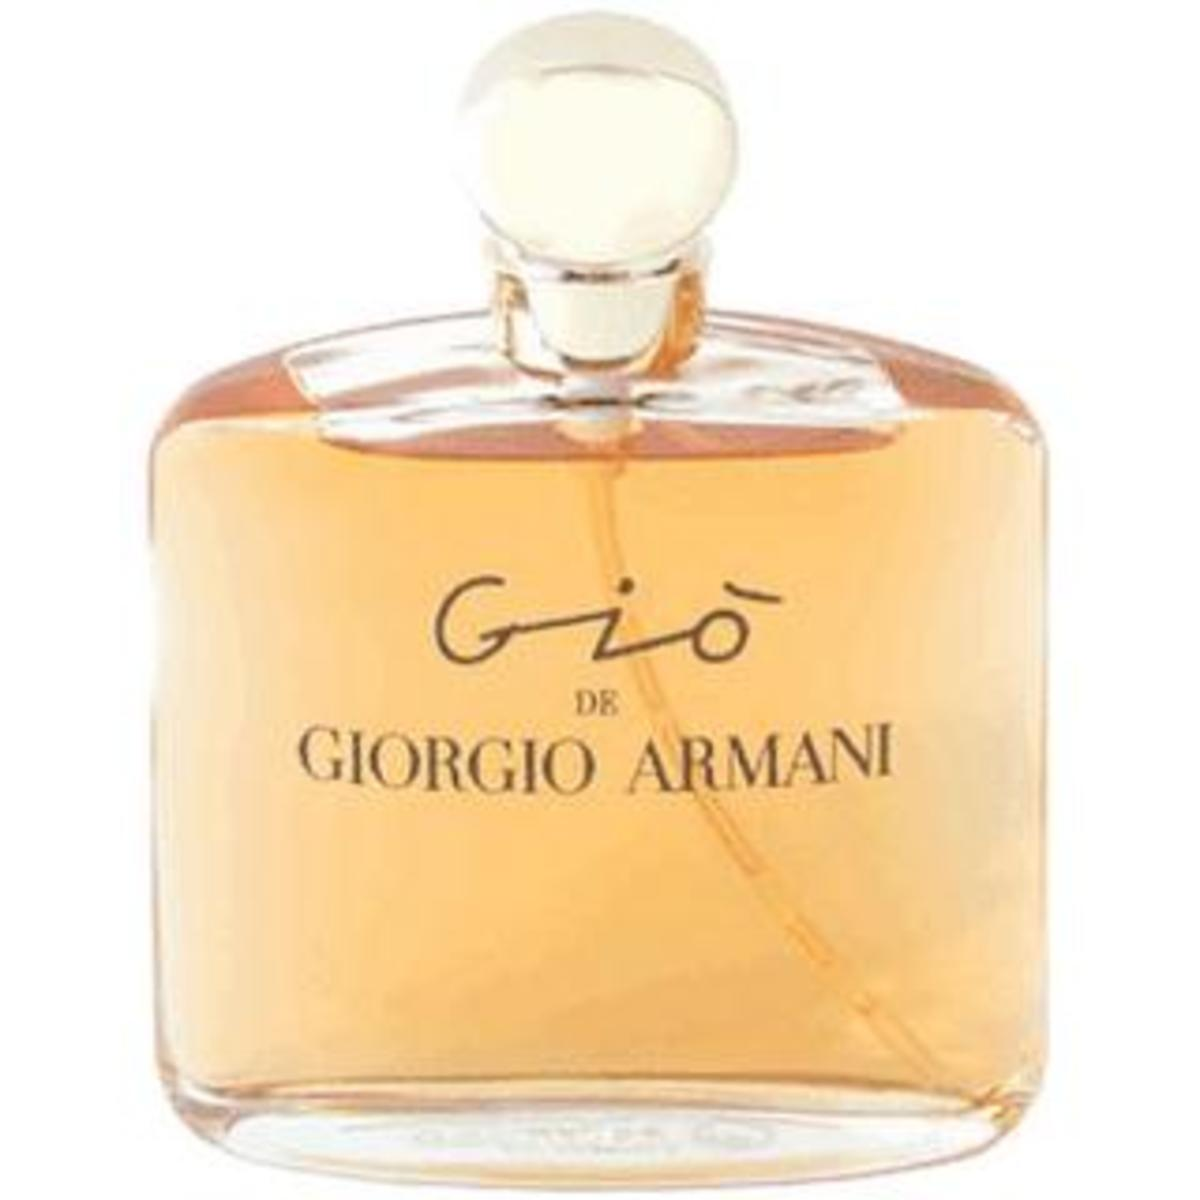 The Giò bottle.